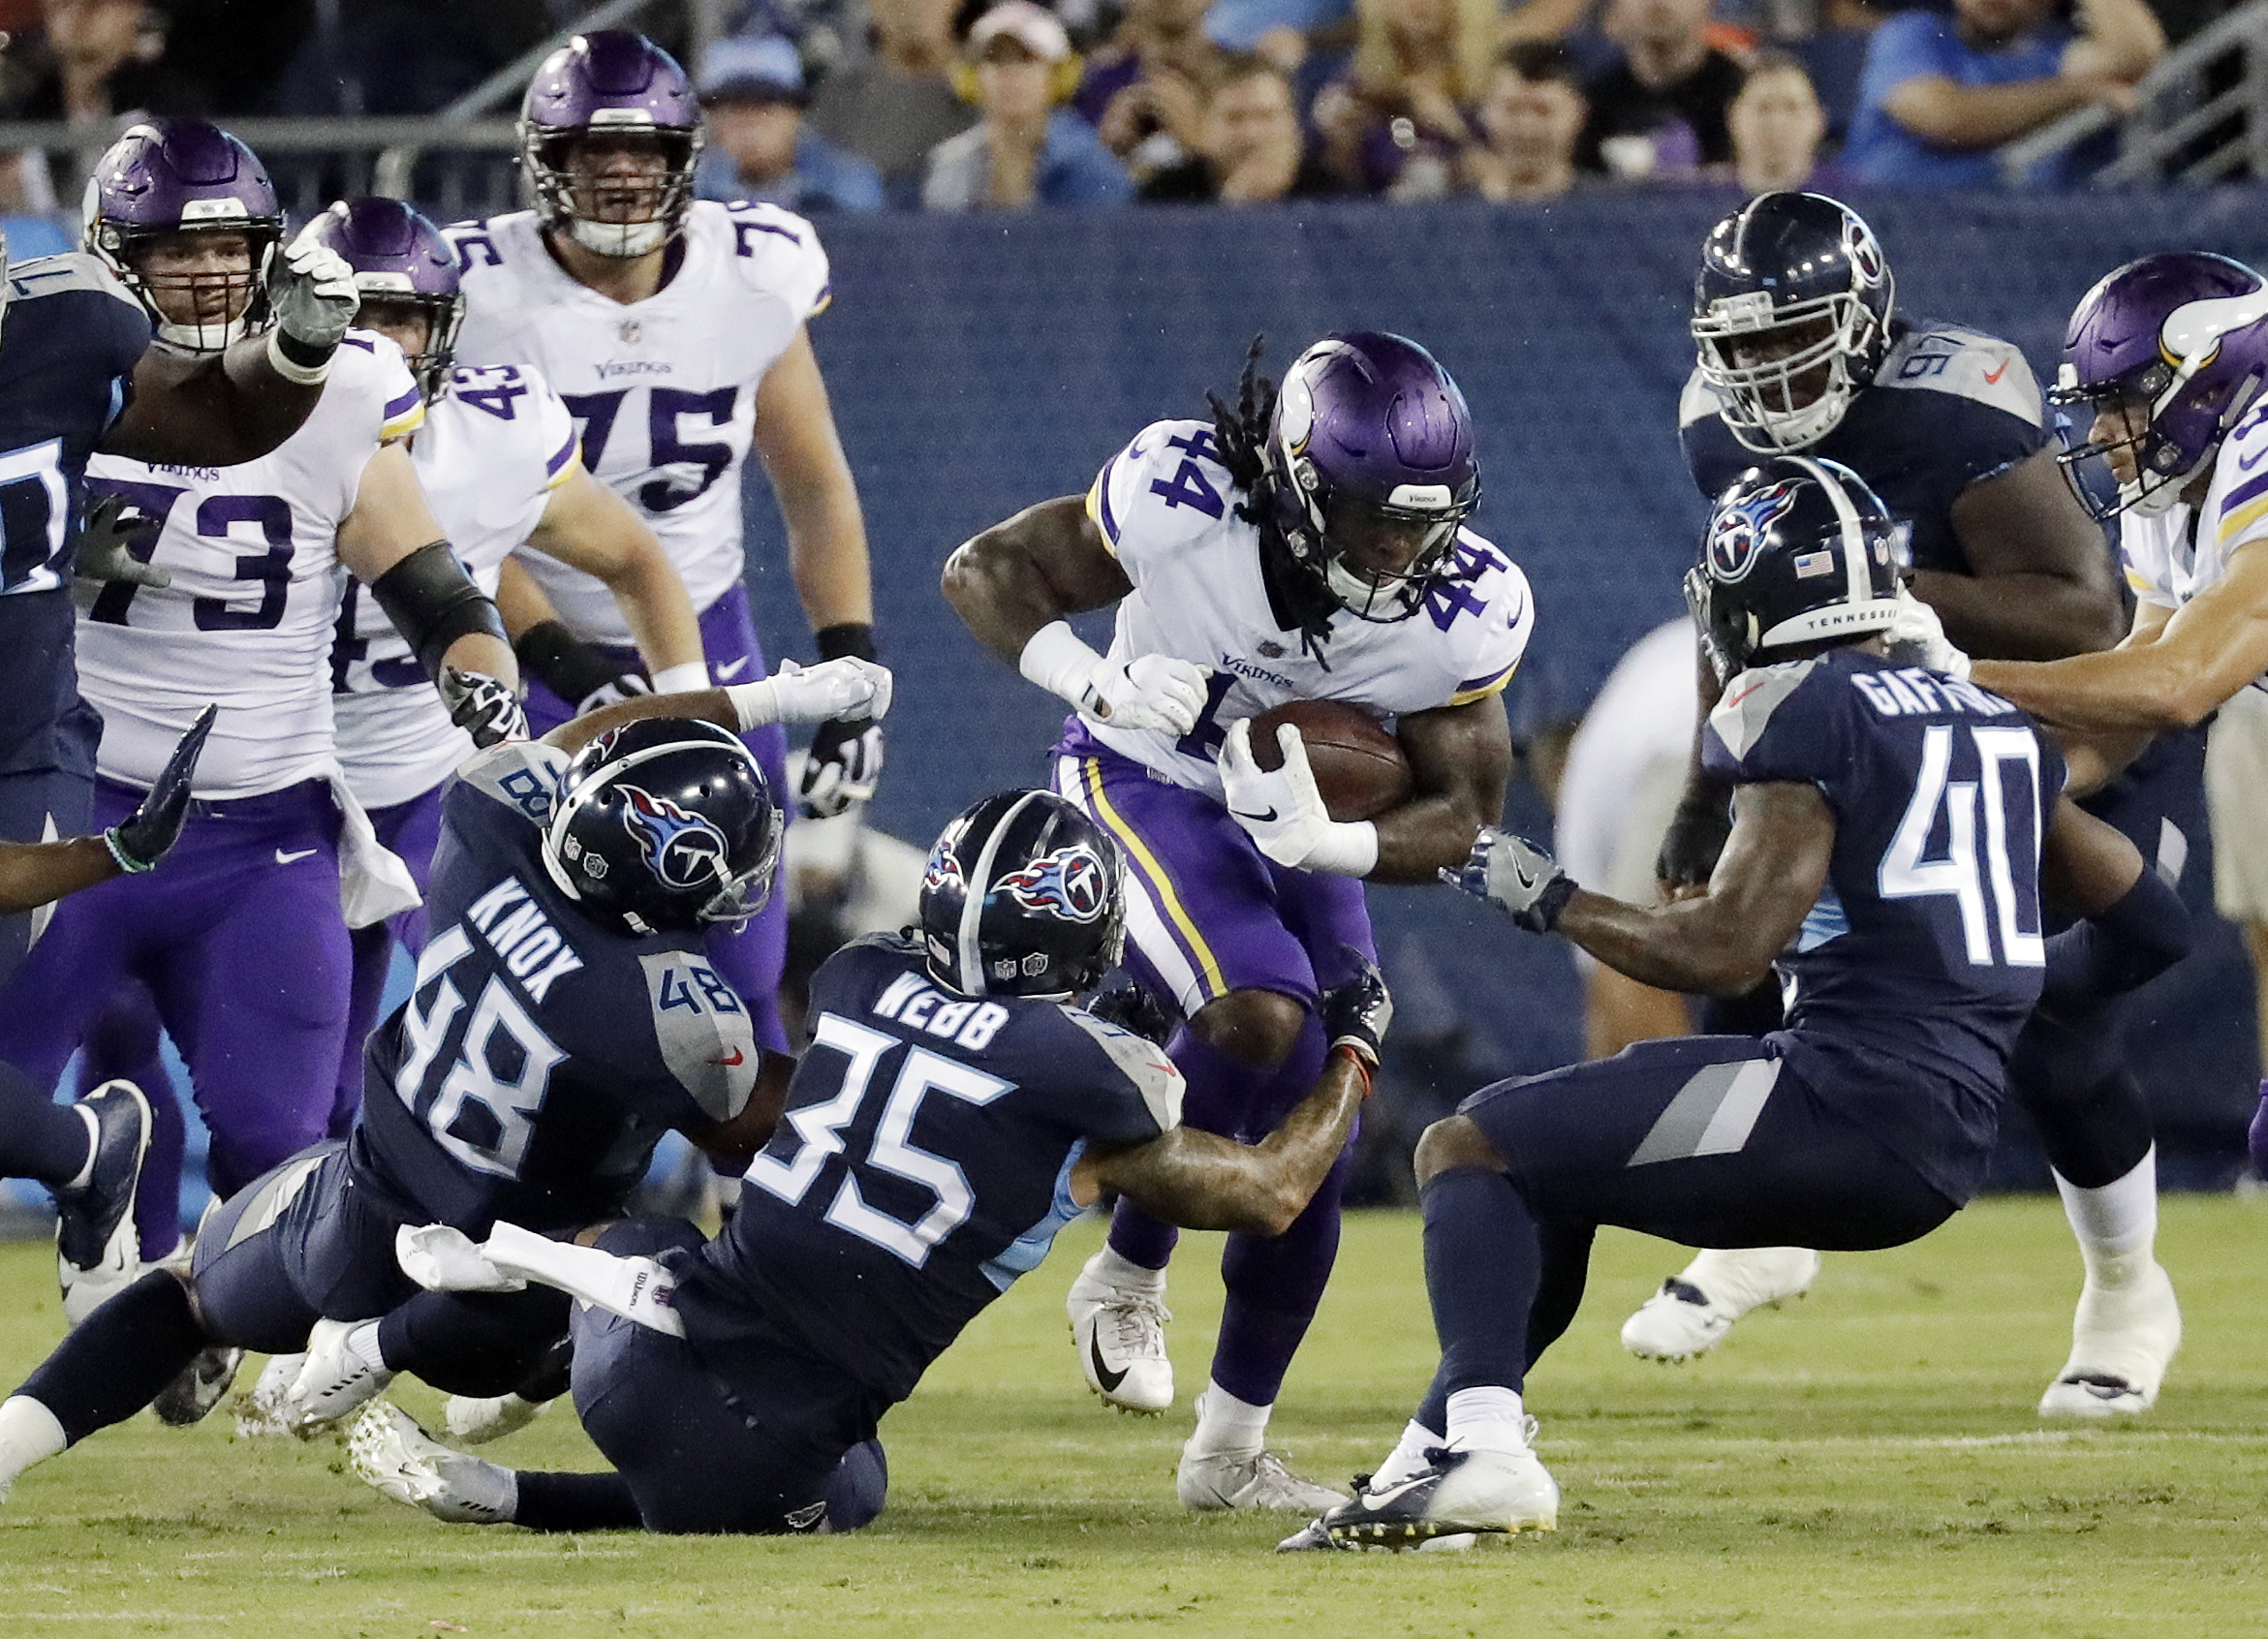 Minnesota Vikings running back Mike Boone (44) carries the ball against the Tennessee Titans in the first half of a preseason NFL football game Thursday, Aug. 30, 2018, in Nashville, Tenn. (AP Photo/James Kenney)